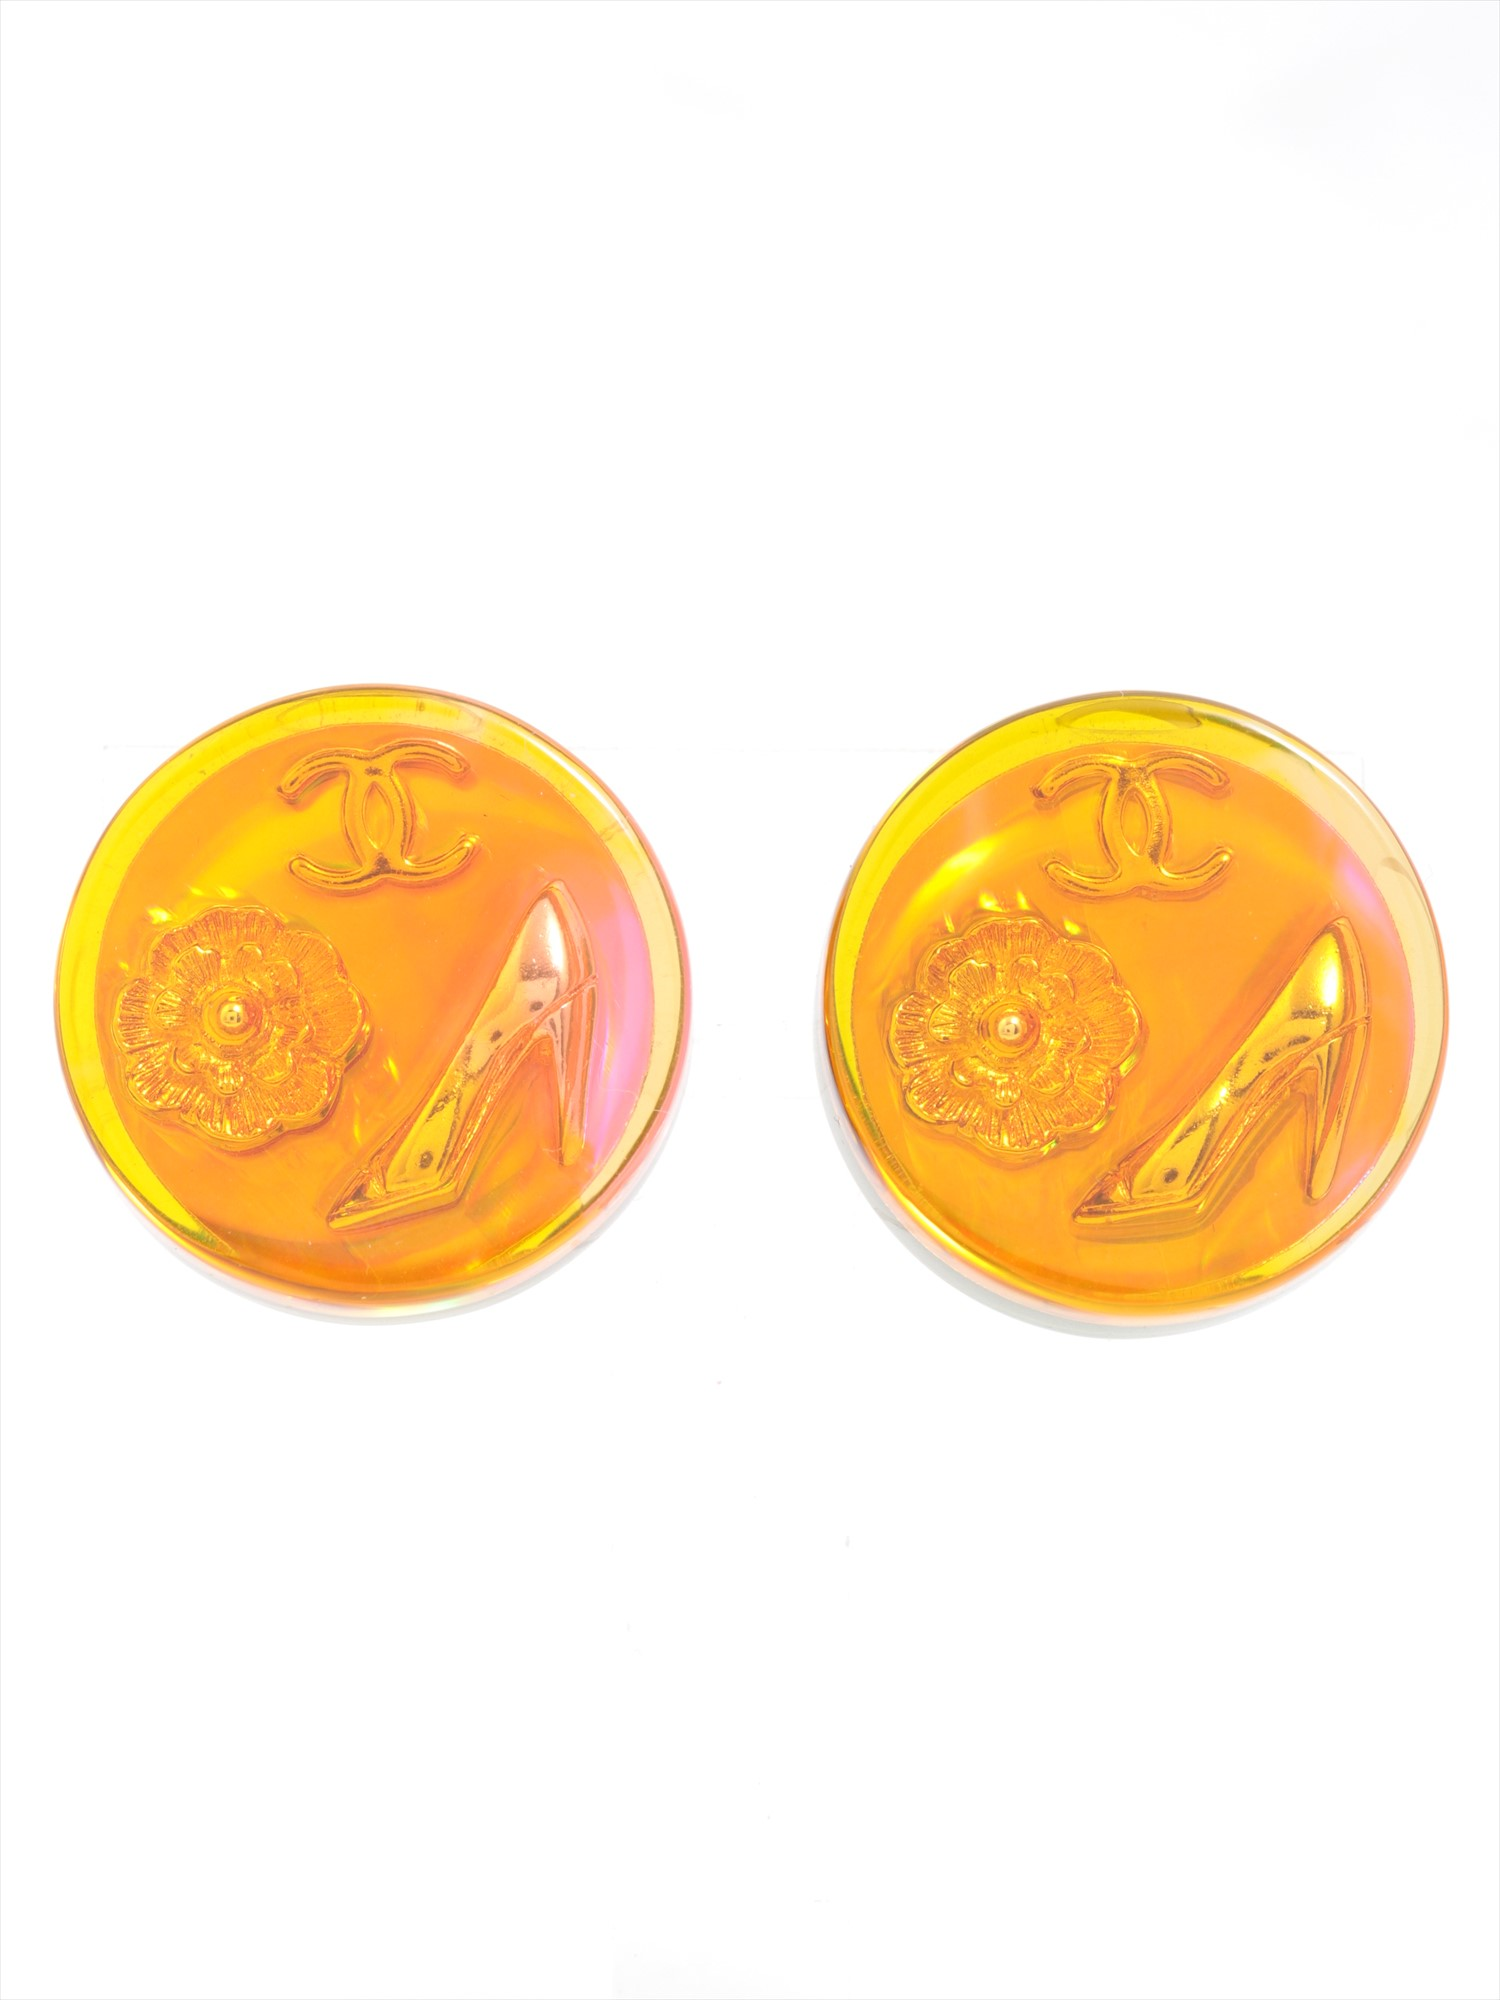 [Used goods] Chanel round earrings (for both ears) plastic yellow green 97A